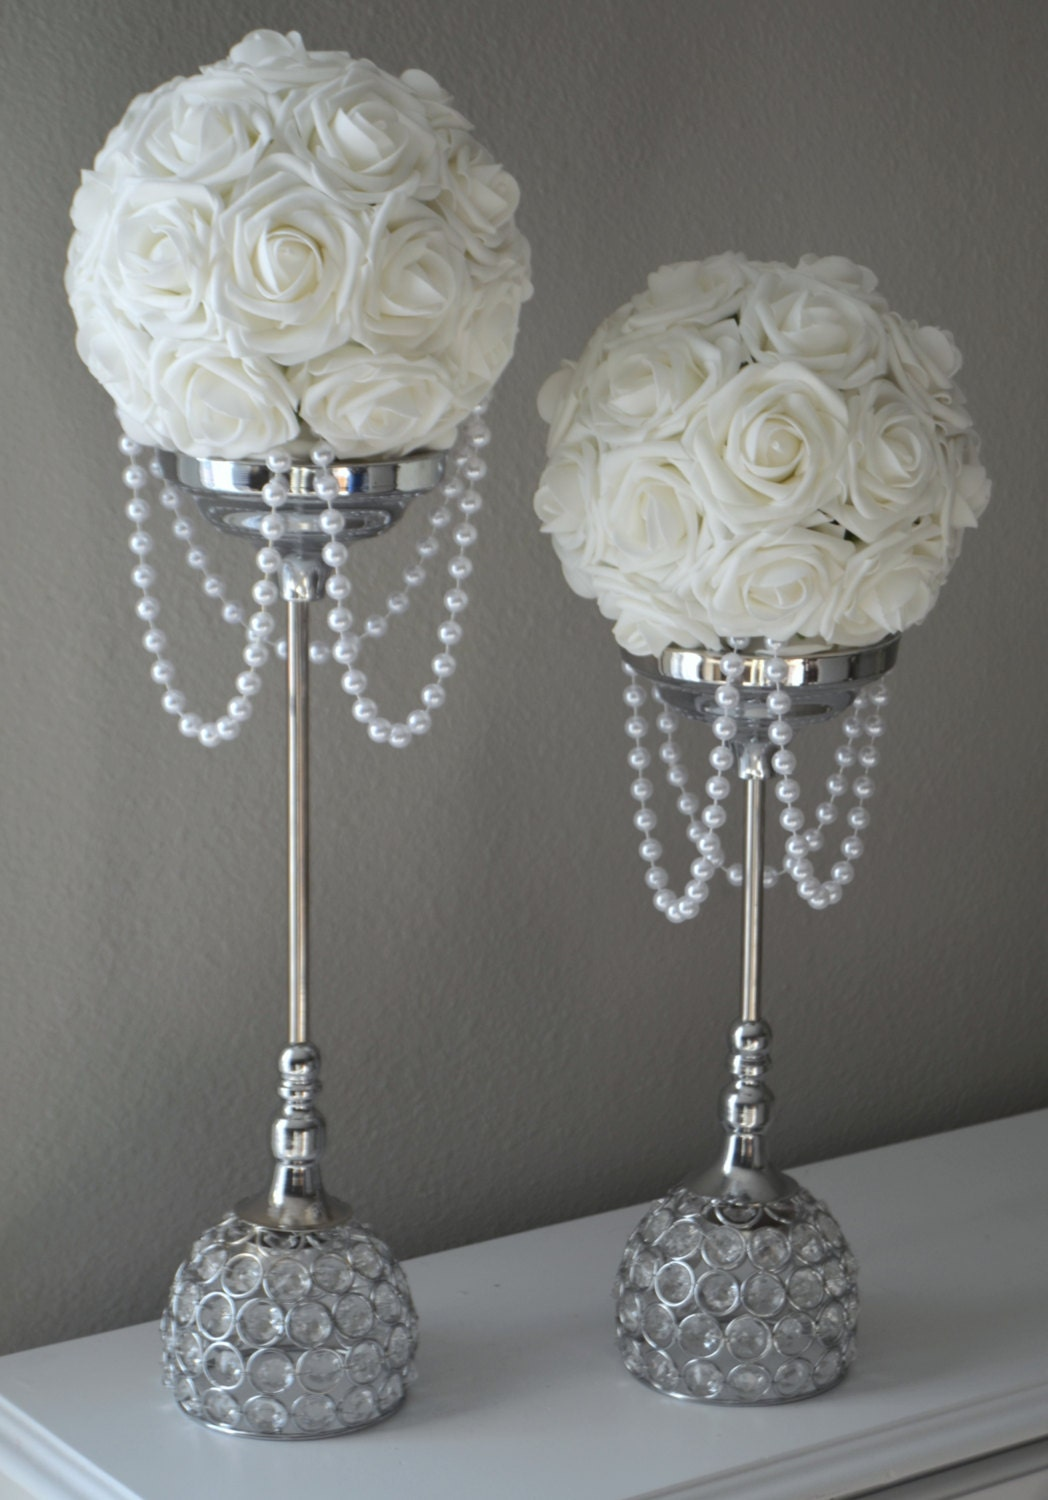 White flower ball with draping pearls wedding decor bridal